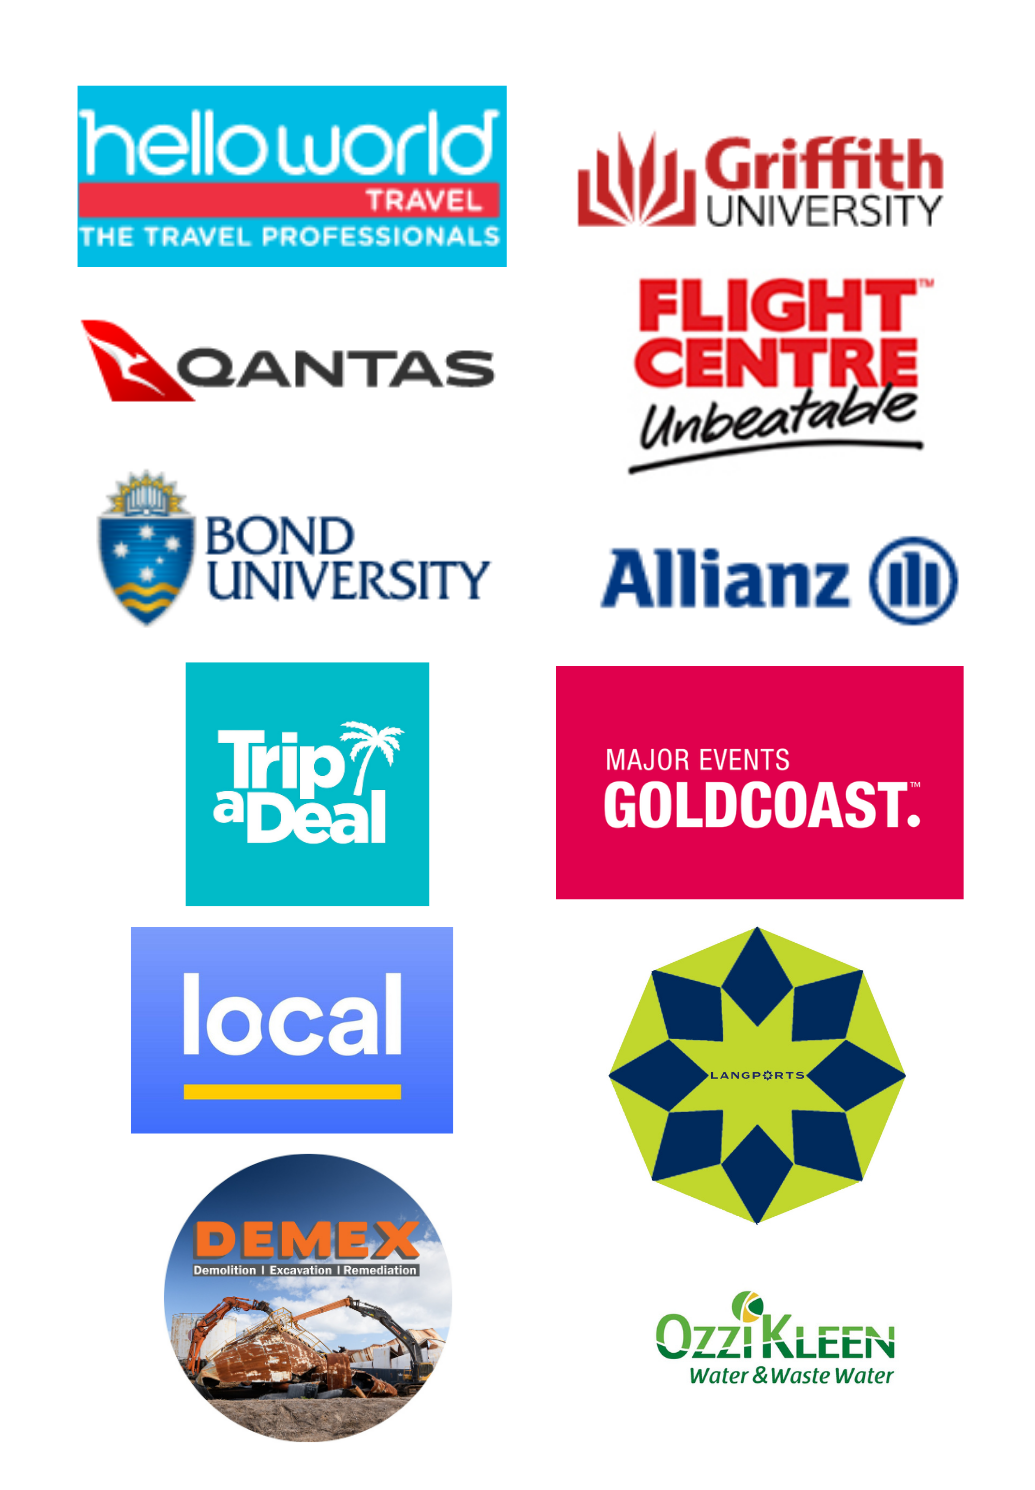 Corporate Airport Transfers Brisbane, Limo Hire Brisbane, Limo Hire Sydney, Conference Transfer, Some fo our clients